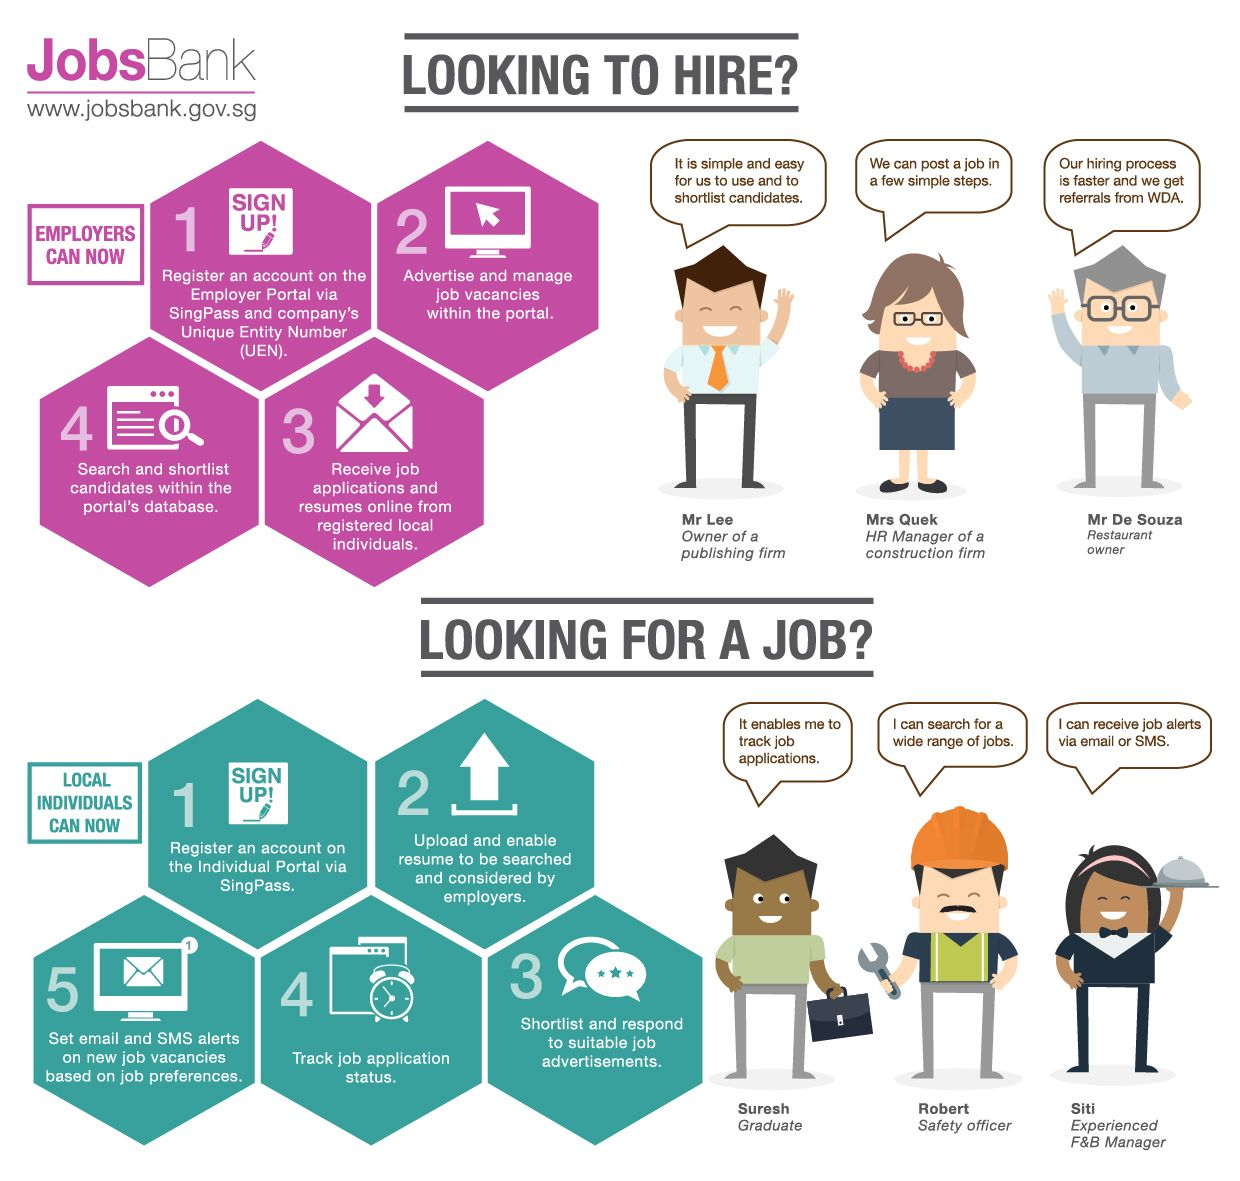 How do local employers and jobseekers go about using Jobs